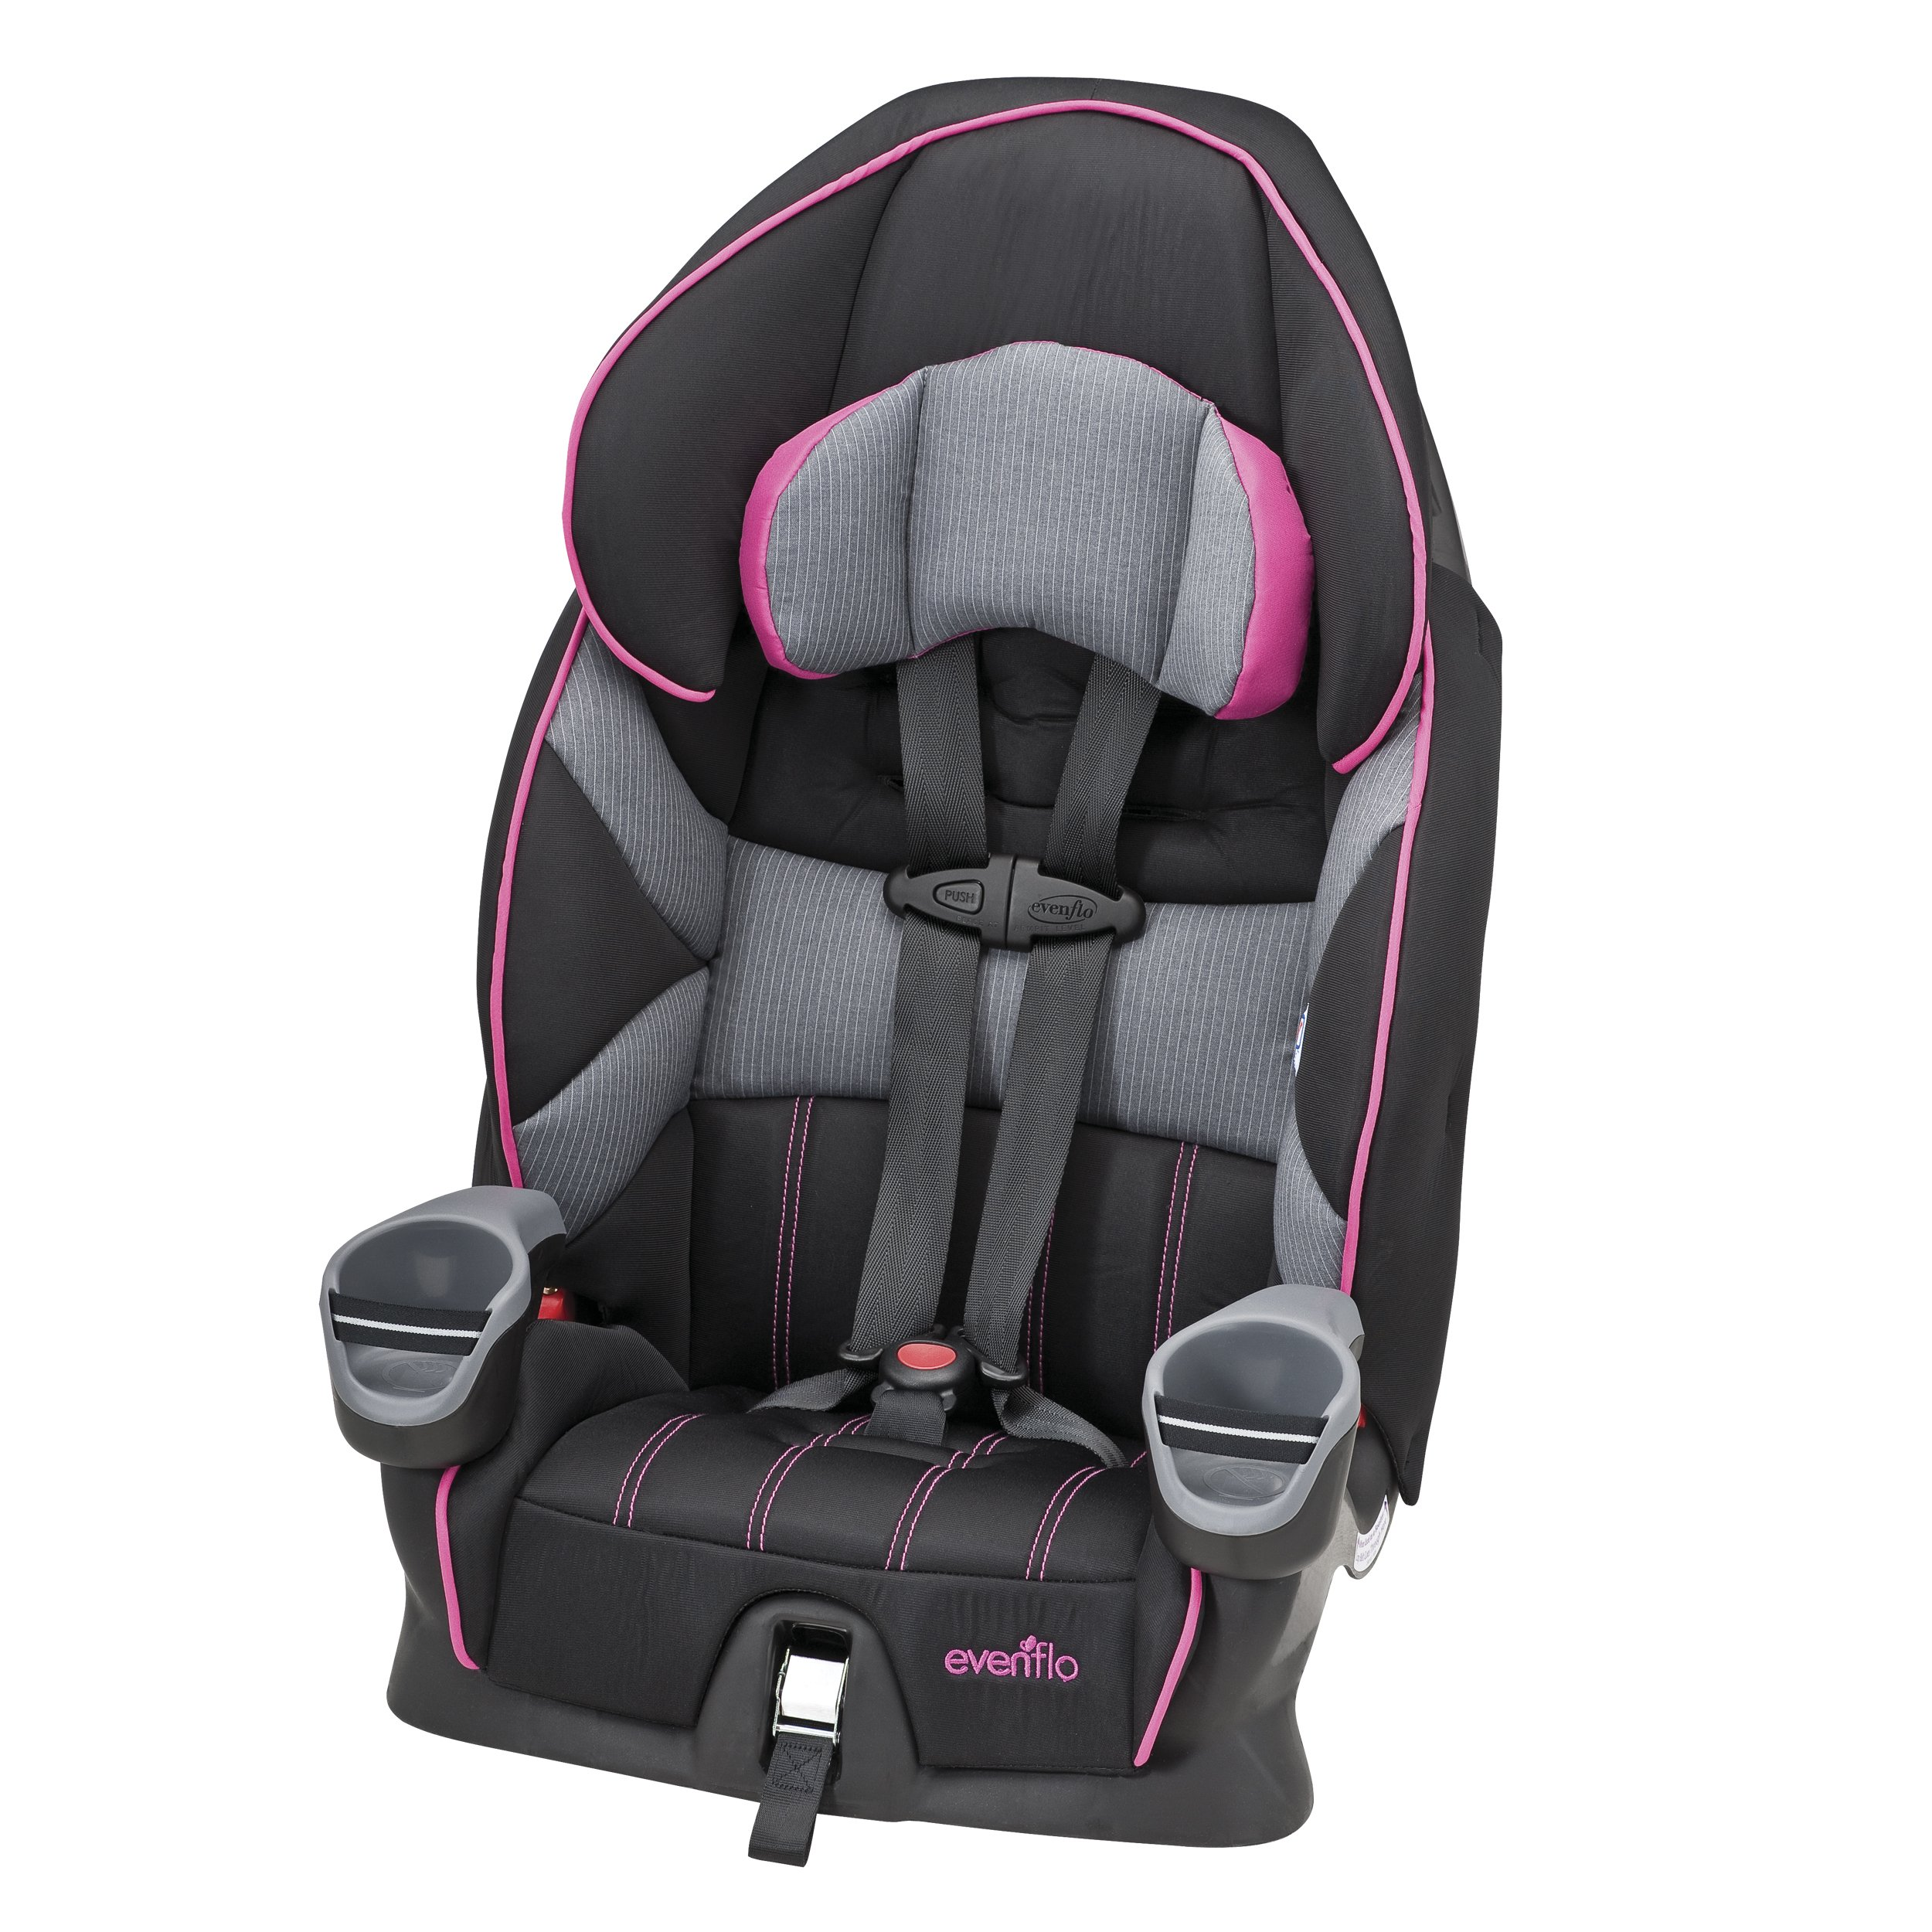 evenflo maestro booster car seat wesley baby. Black Bedroom Furniture Sets. Home Design Ideas